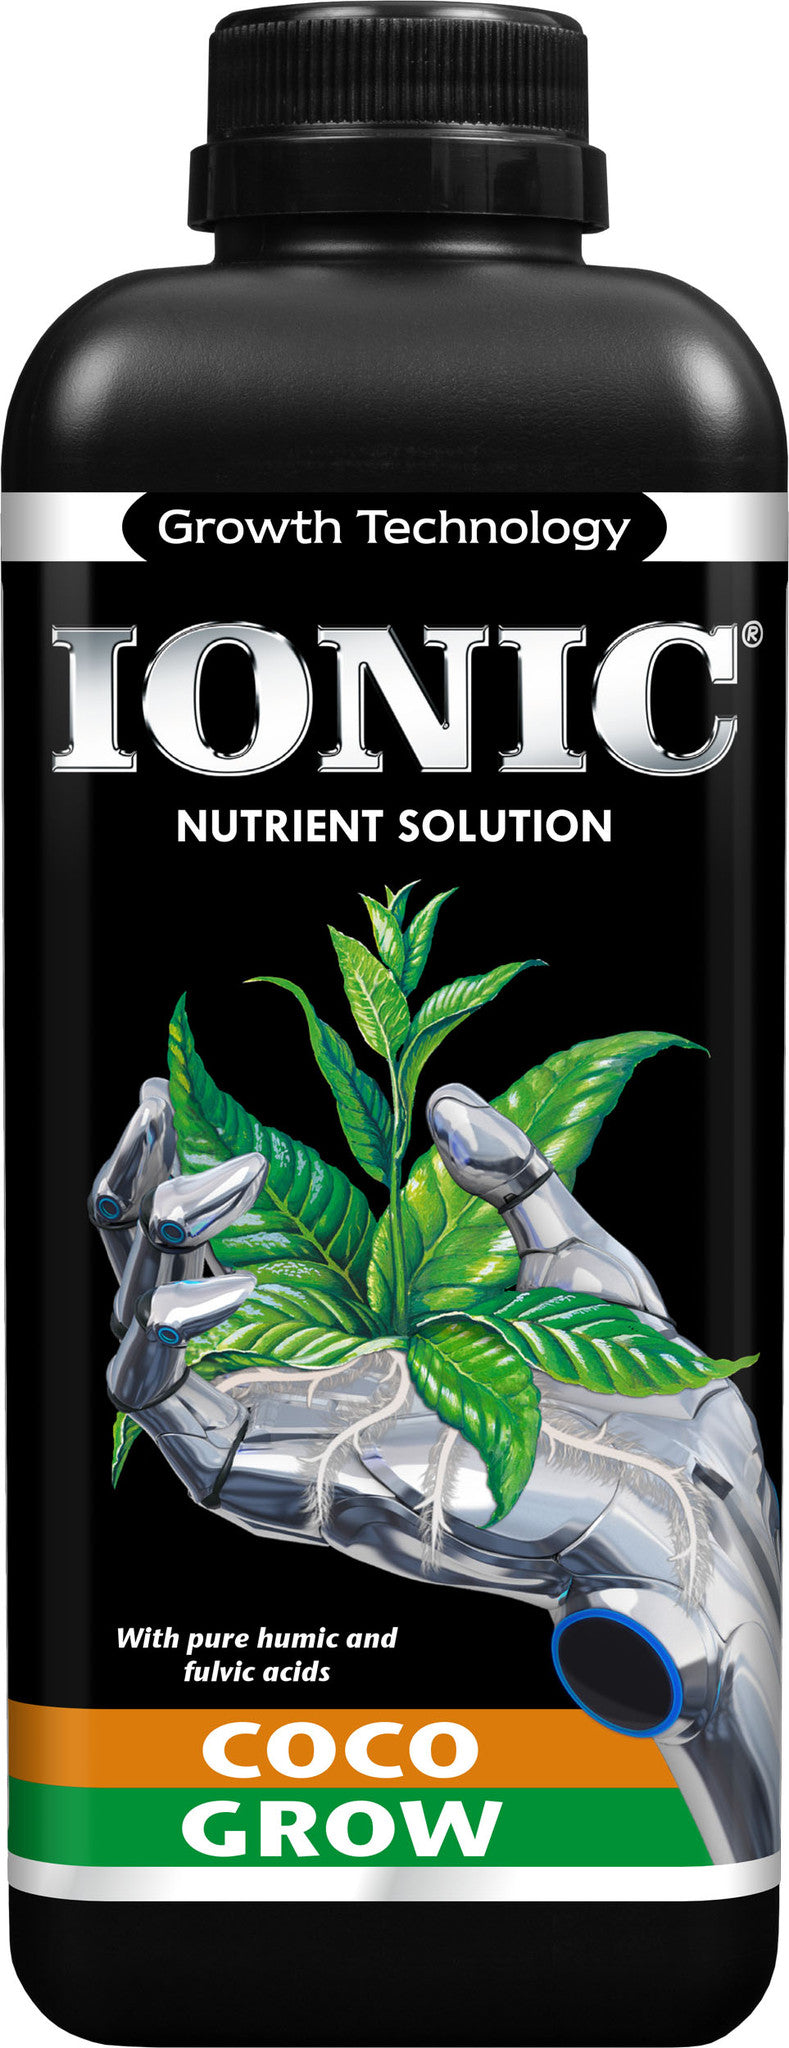 Growth Technology - Ionic - Coco Grow - NPK Technology Hydroponics